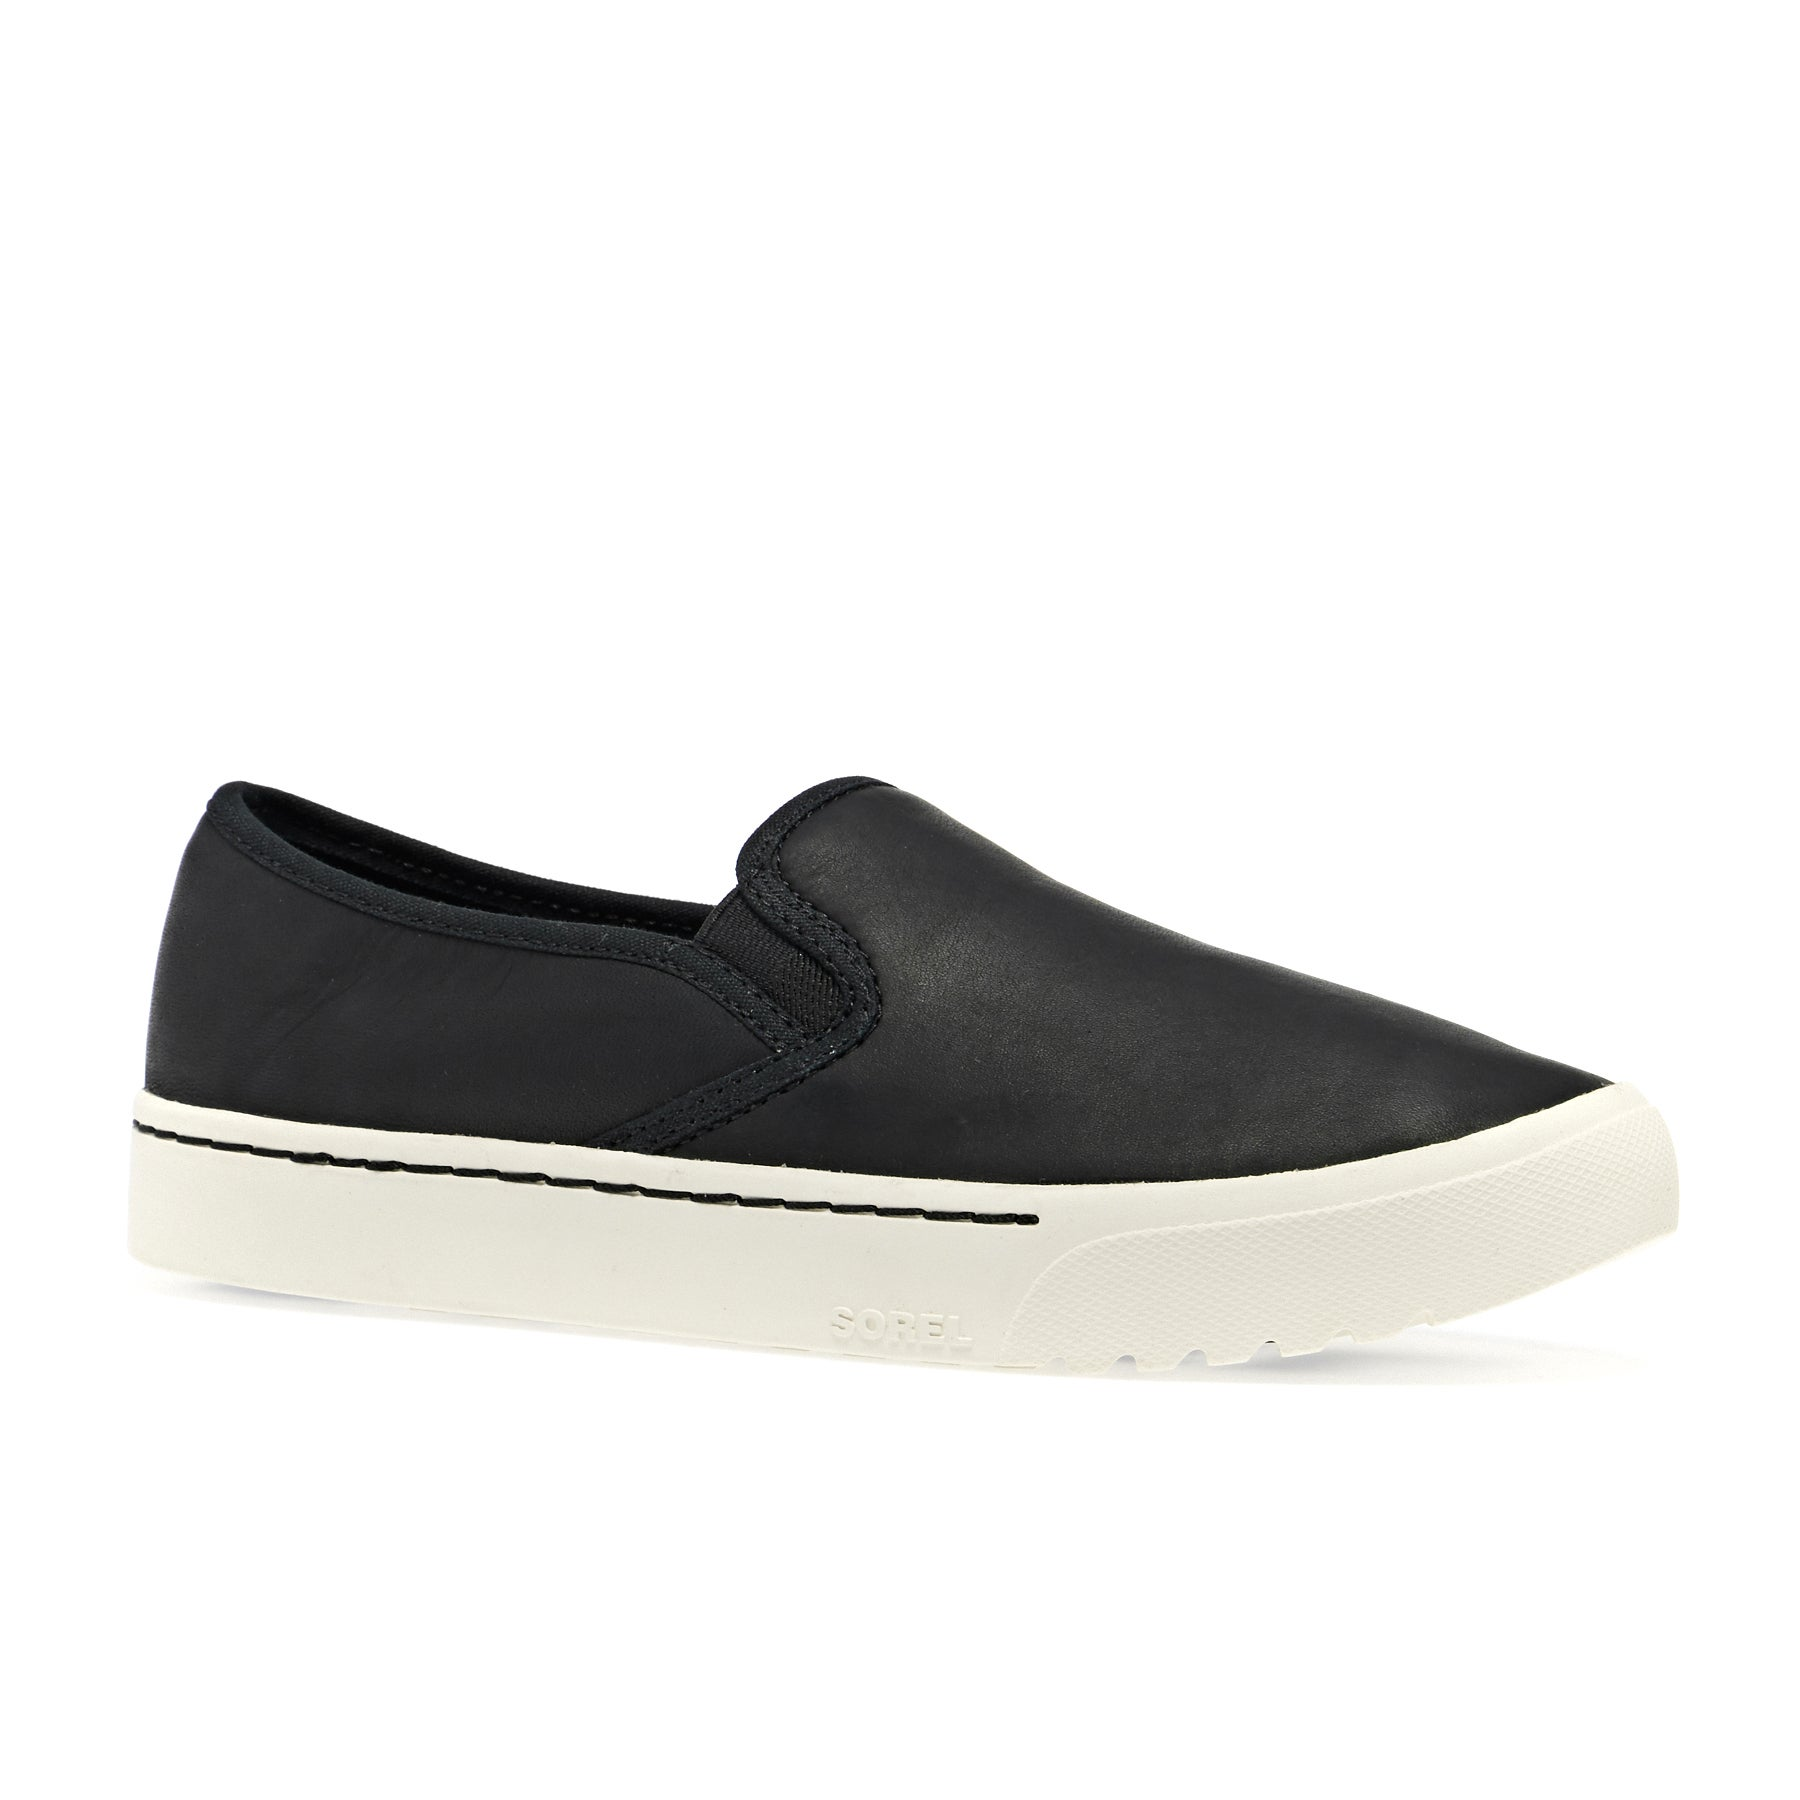 Sorel Campsneak Slip On Womens Shoes - Lucca-black